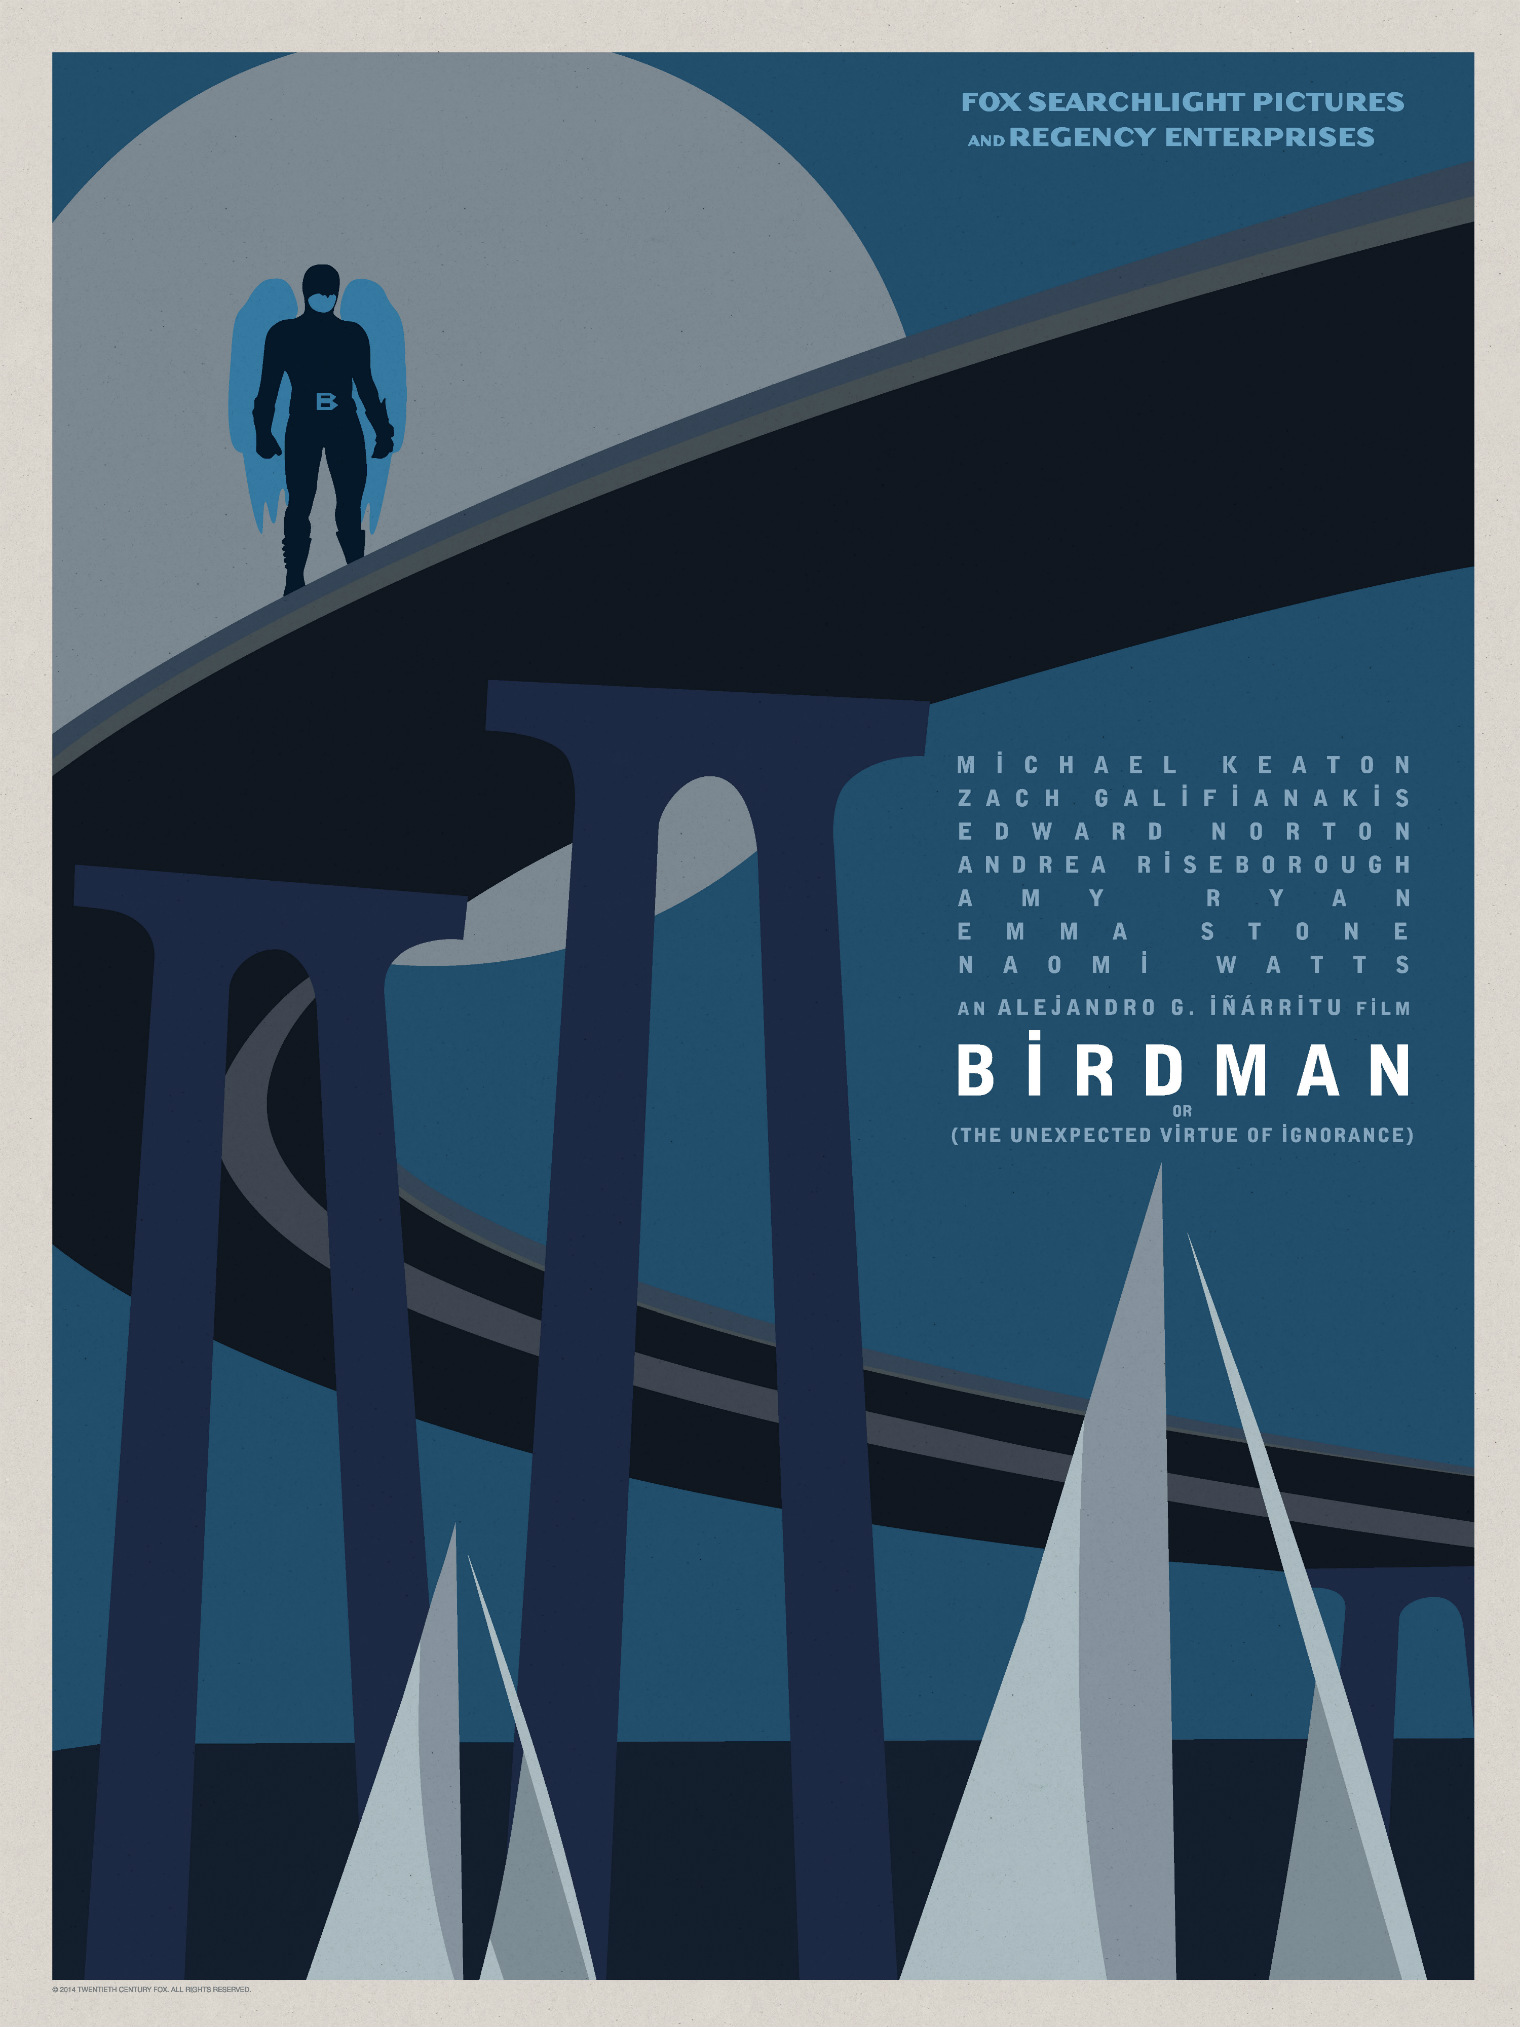 Birdman-Official Poster Minimalist XLG-13OUTUBRO2014-08